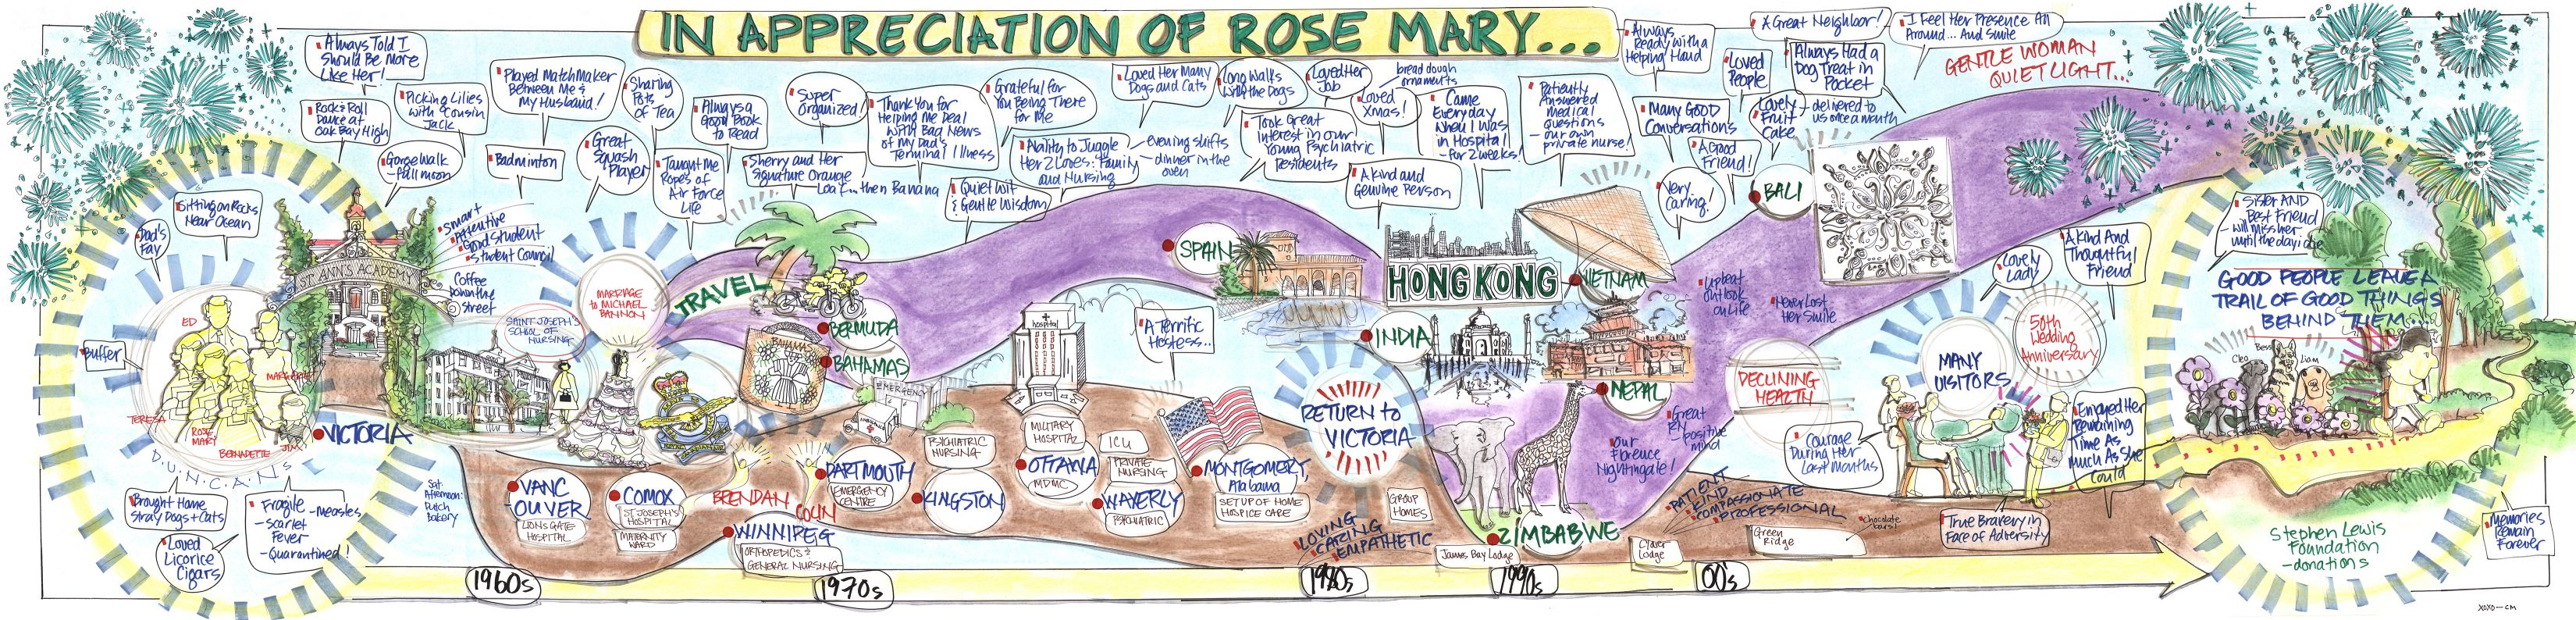 In Appreciation of Rose Mary - Live Celebration Map